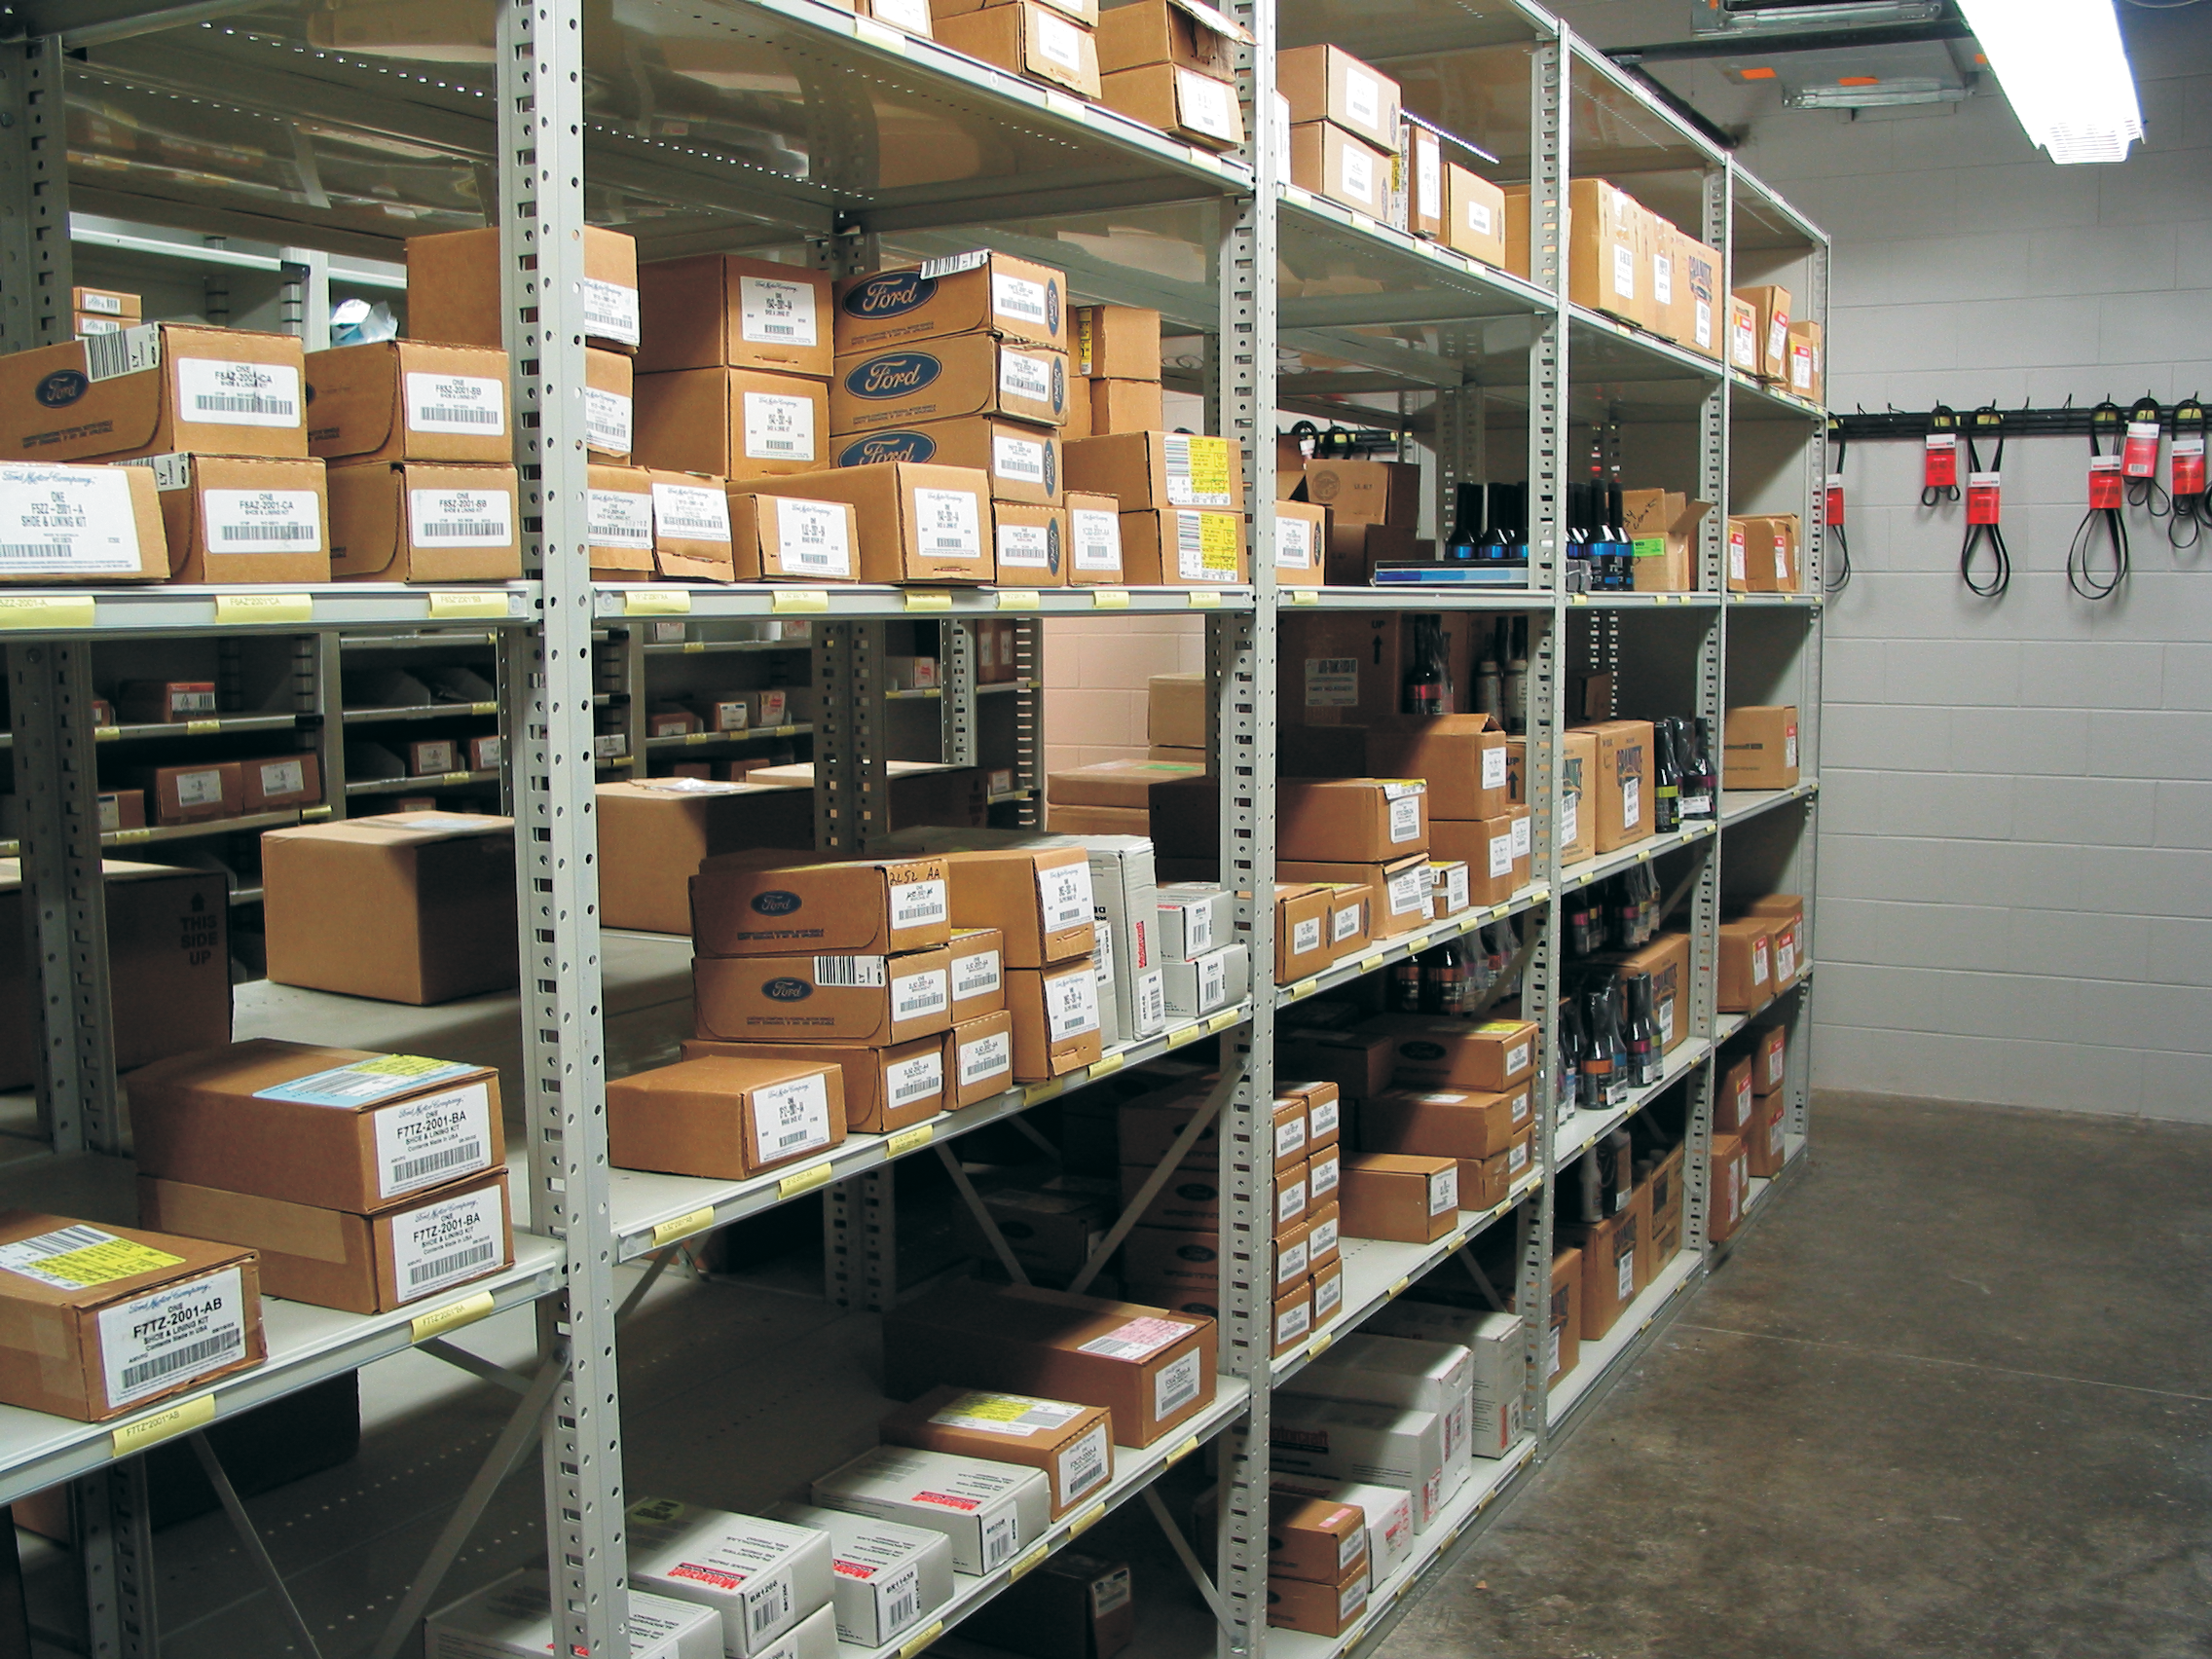 Automotive & Retail Stockroom Shelving is Highly Efficient and Maximizes Inventory Storage